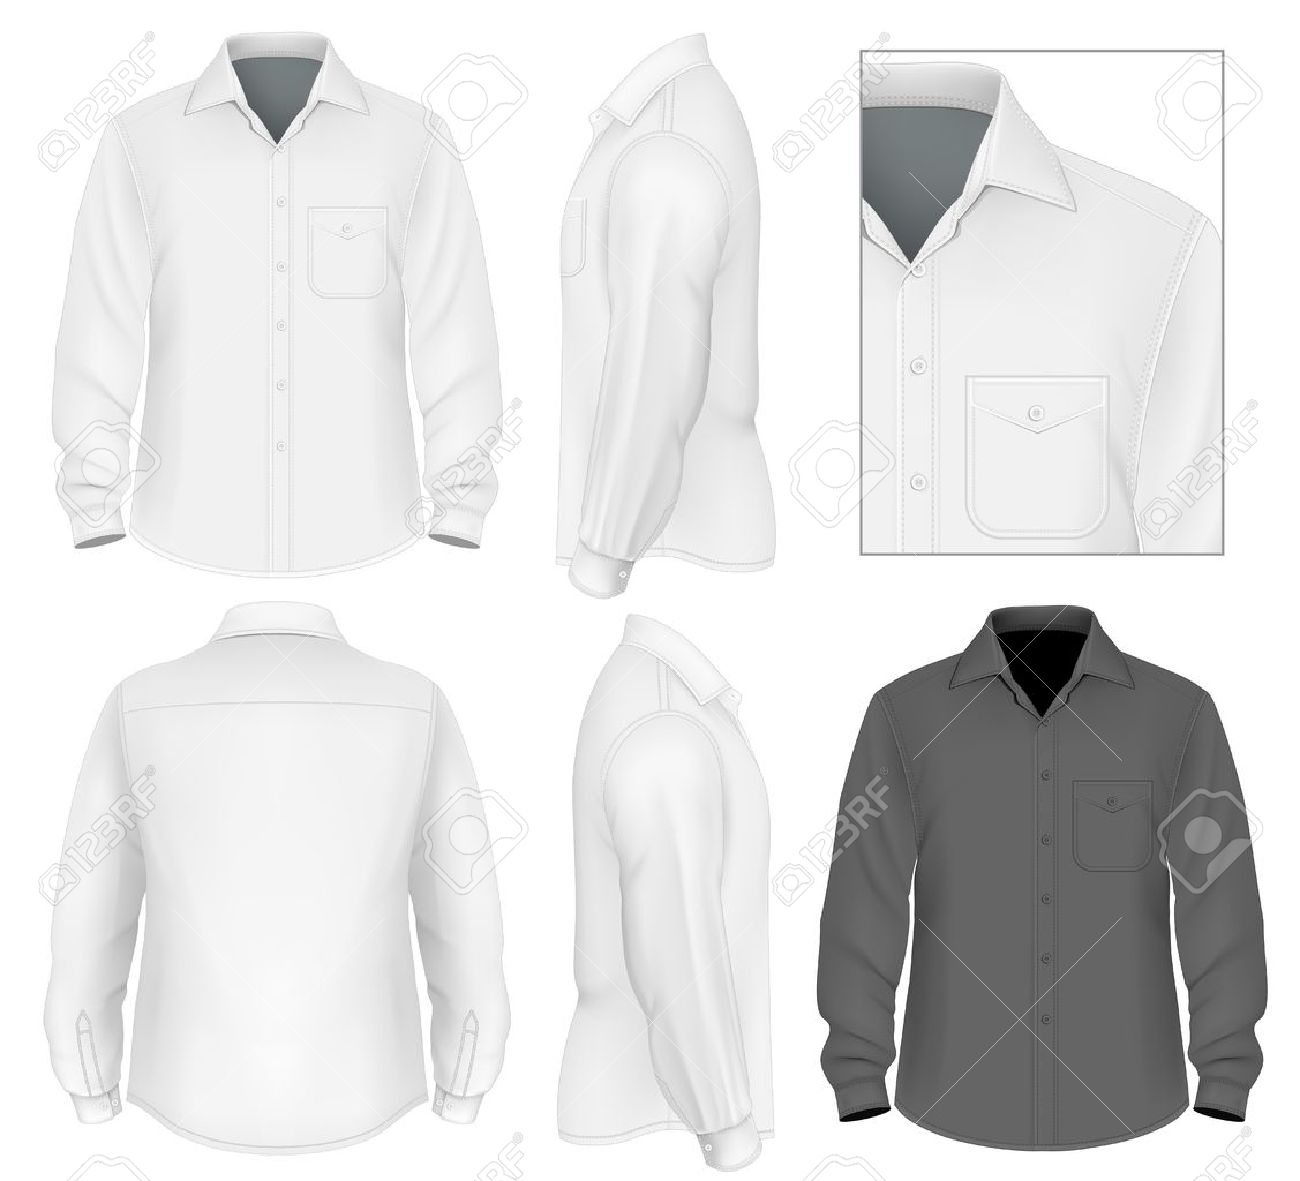 Mens Button Down Shirt Long Sleeve Design Template Royalty Free